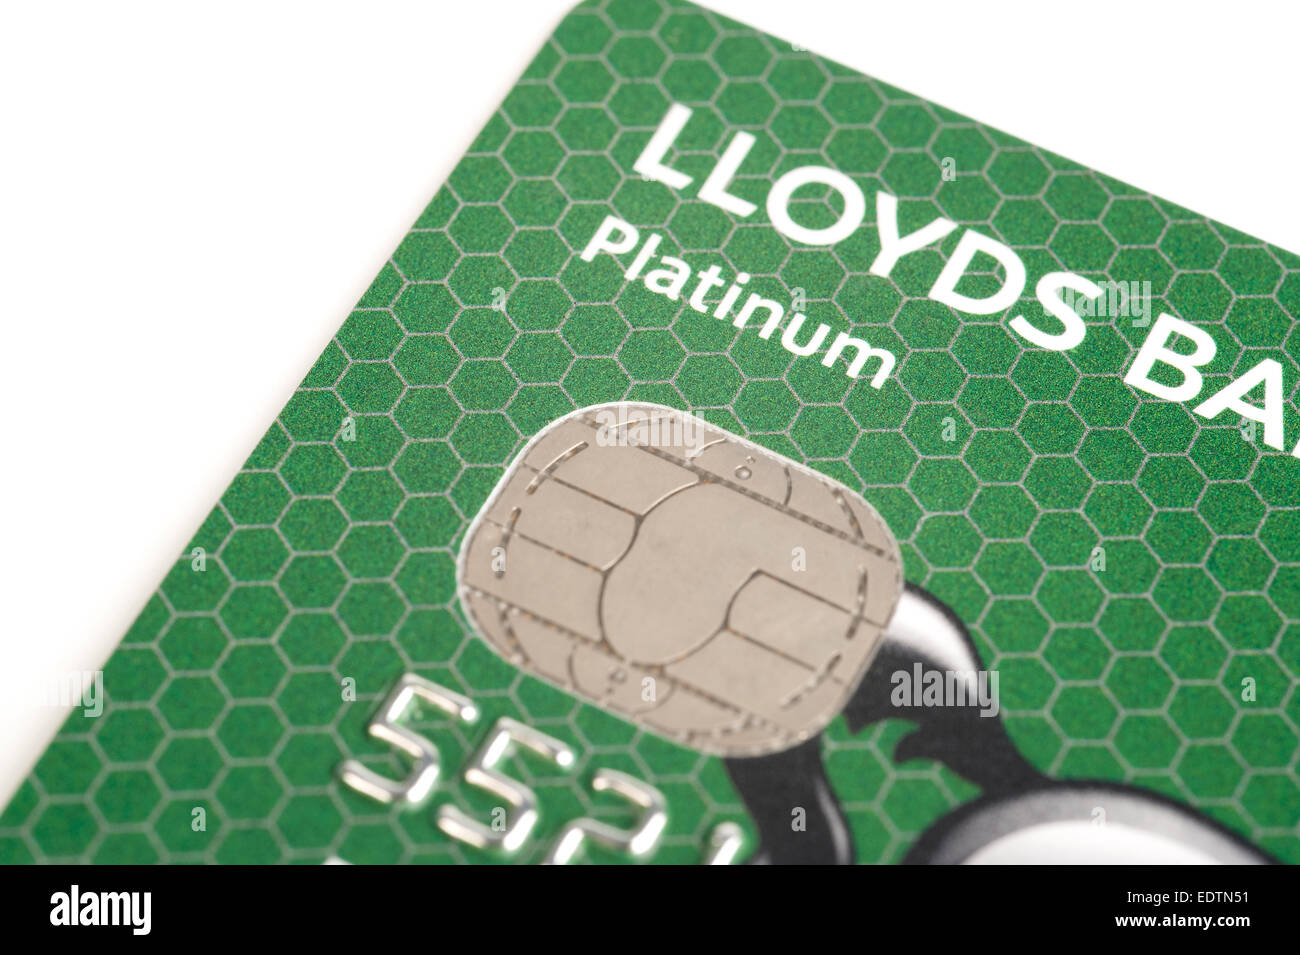 Lloyds Bank Integrated Circuit Card ICC) Chip Credit Card Detail - Stock Image